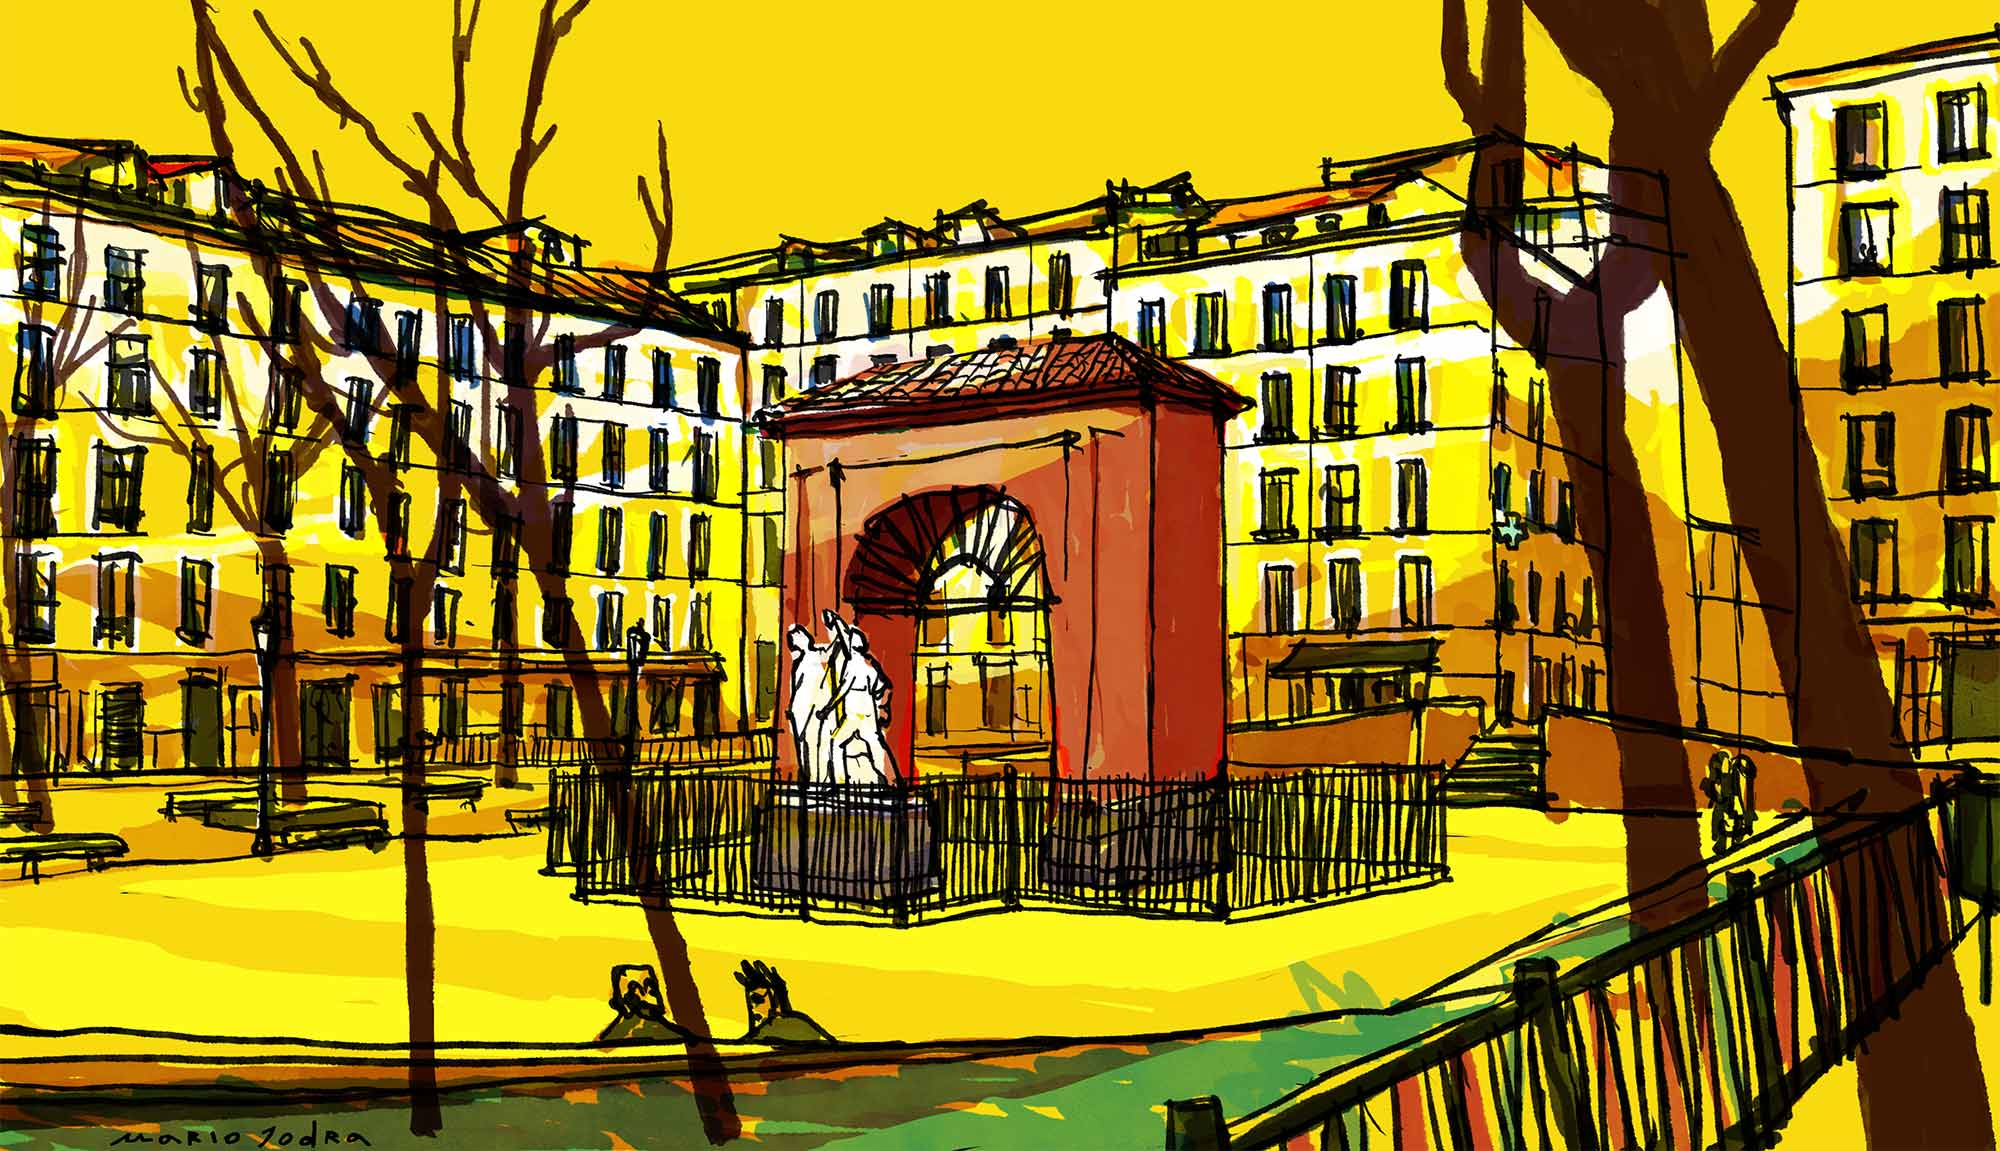 Mario Jodra illustration - Plaza del Dos de Mayo, Madrid